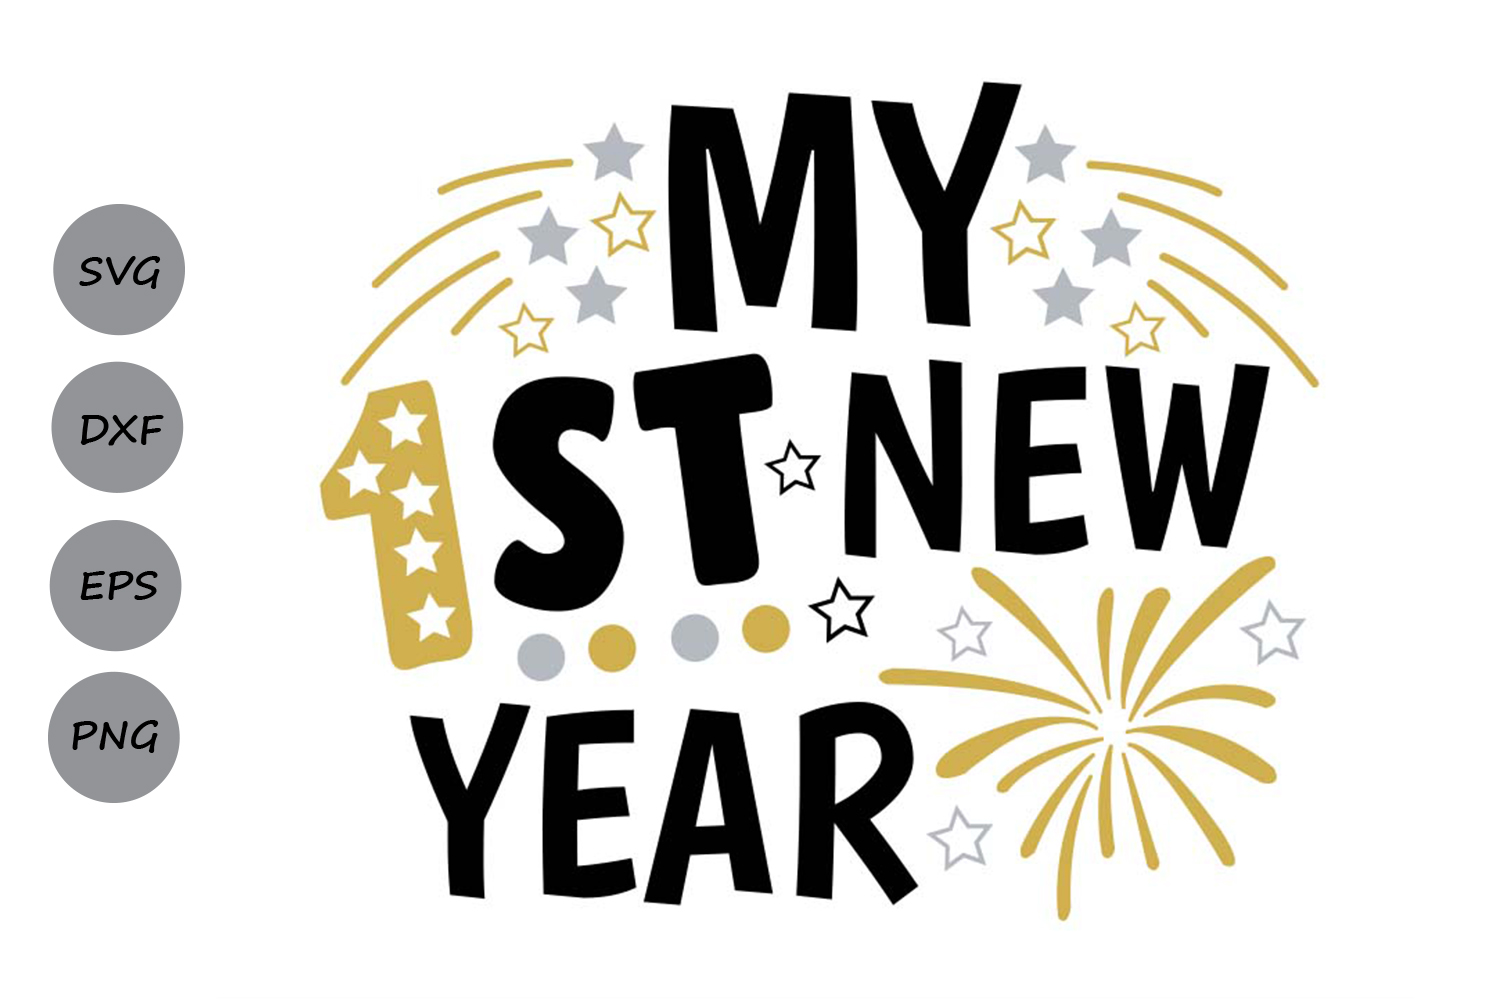 Download Free My First New Year Svg Graphic By Cosmosfineart Creative Fabrica for Cricut Explore, Silhouette and other cutting machines.